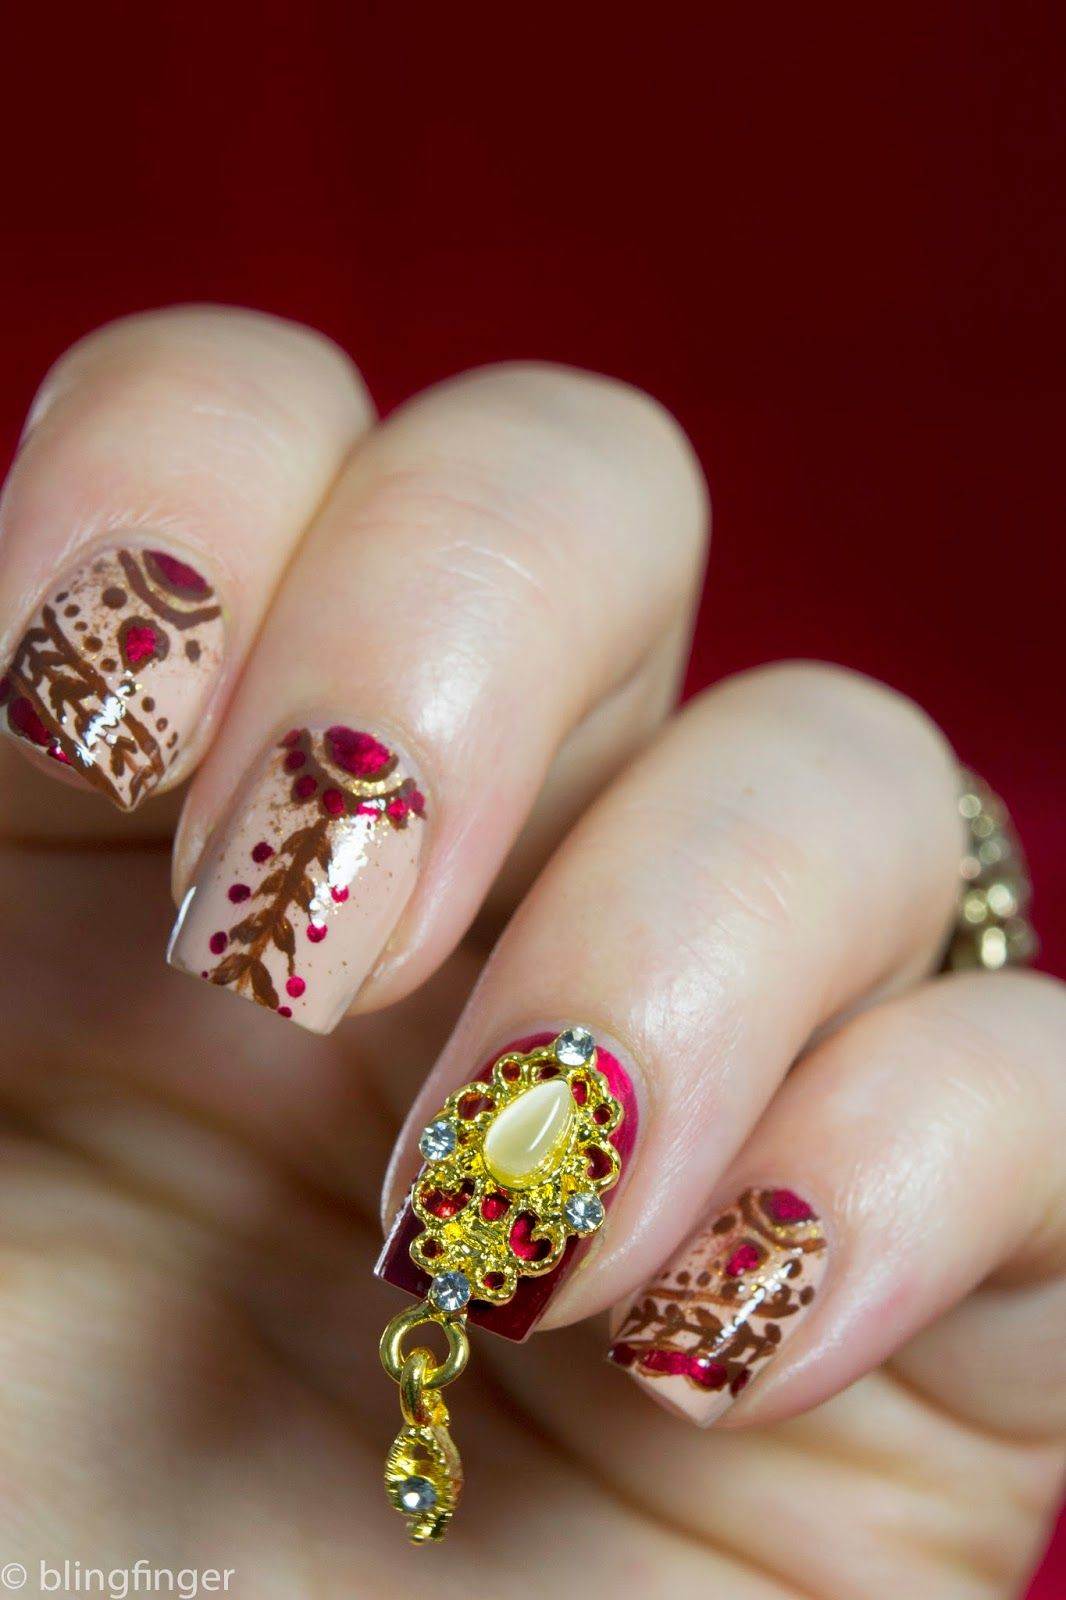 Httpblingfinger201406indian Bridal Nailsml Nail